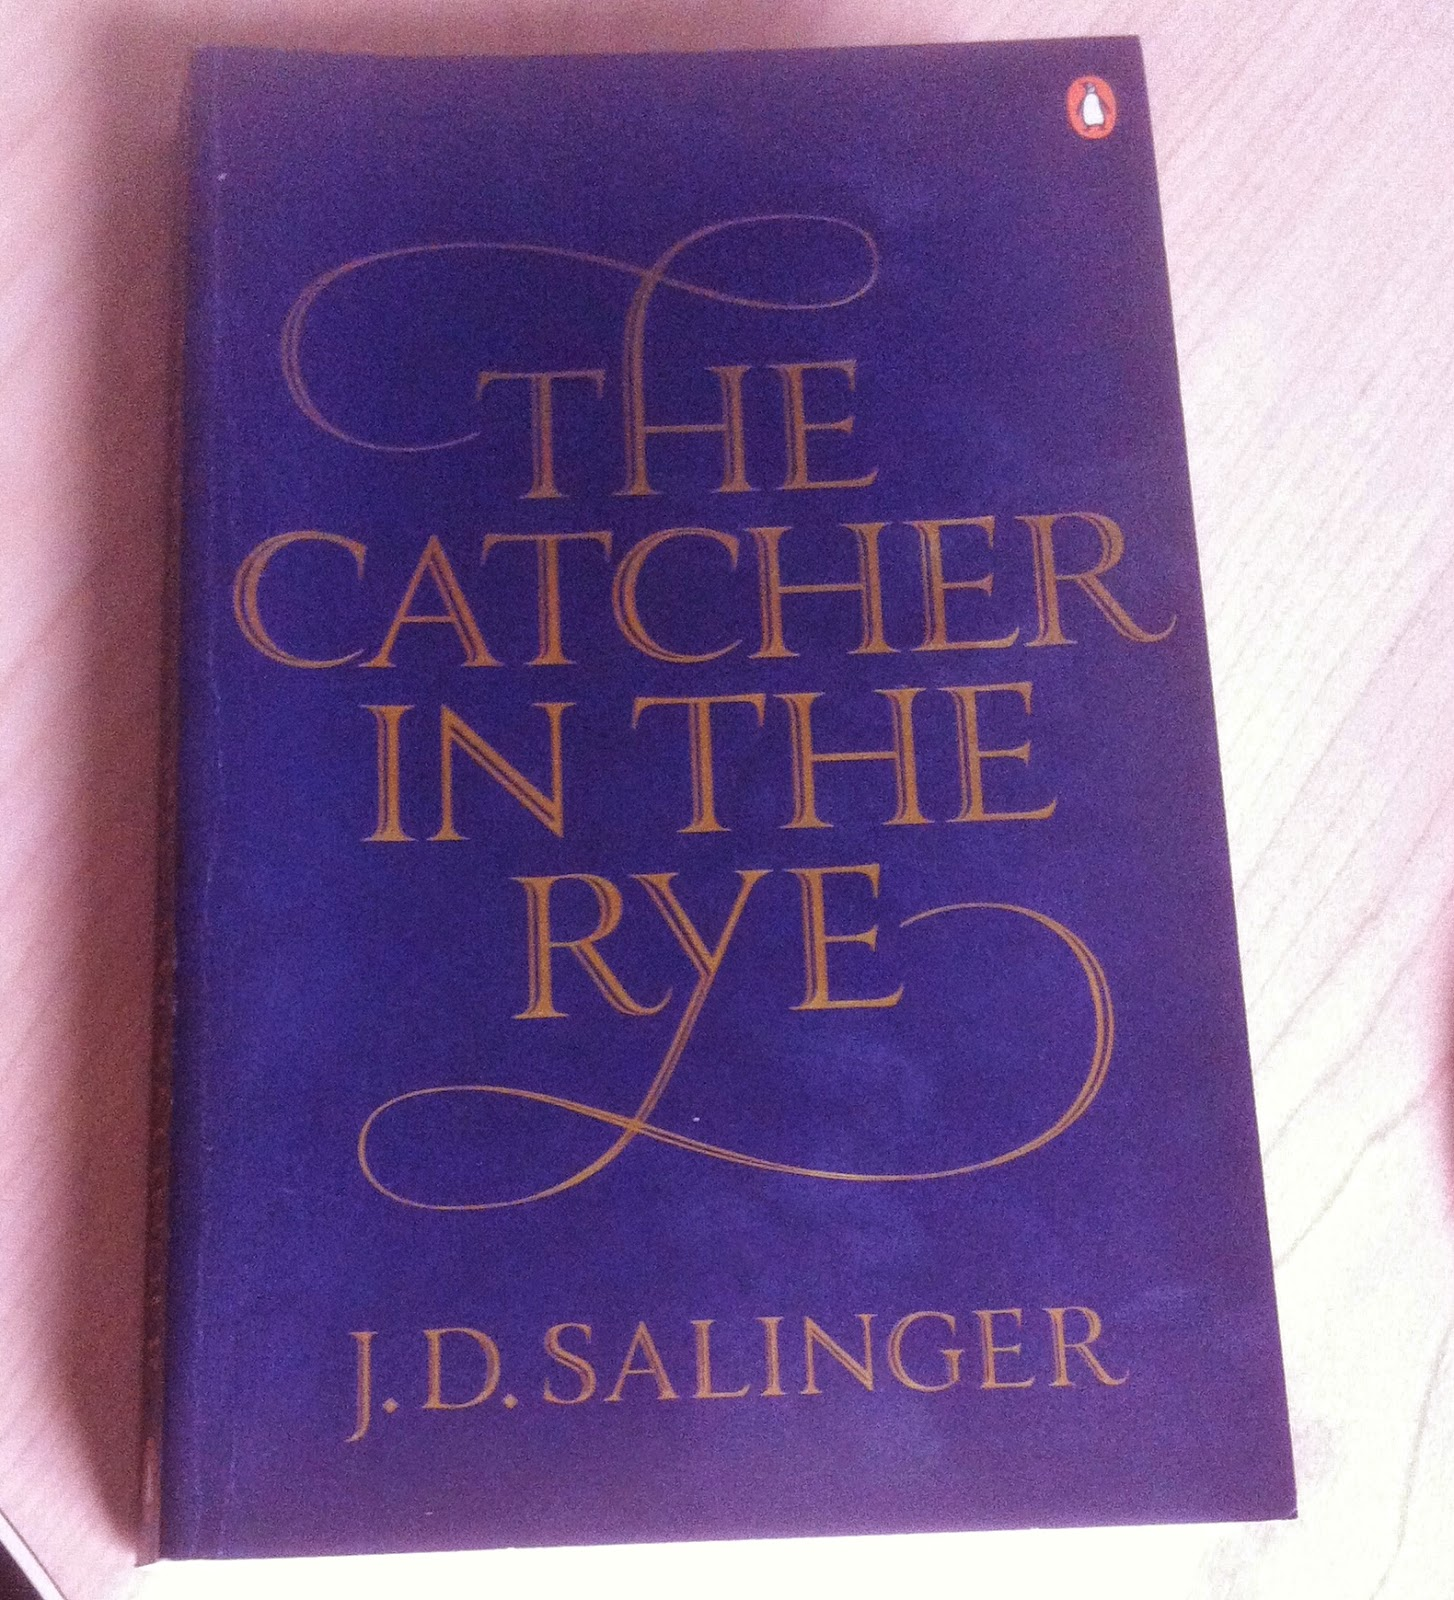 a review of jd salingers novel the catcher in rye Jd salinger's novel tells the story of holden caulfield, a literary figure you'll  either love or hate watch this video to find out which camp.